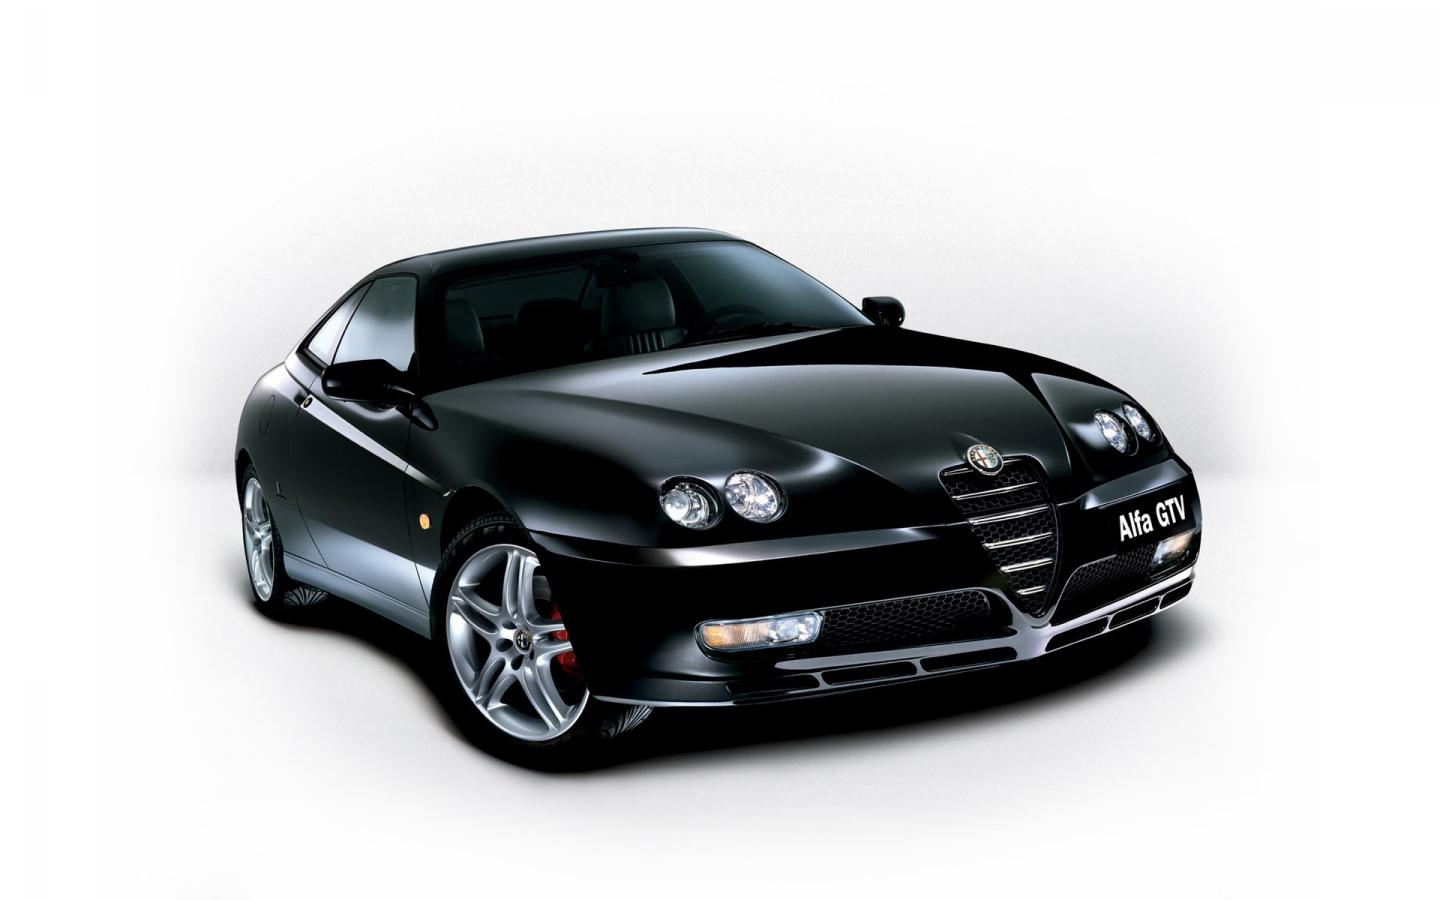 1440x900 - Alfa Romeo 12C GTS Wallpapers 22